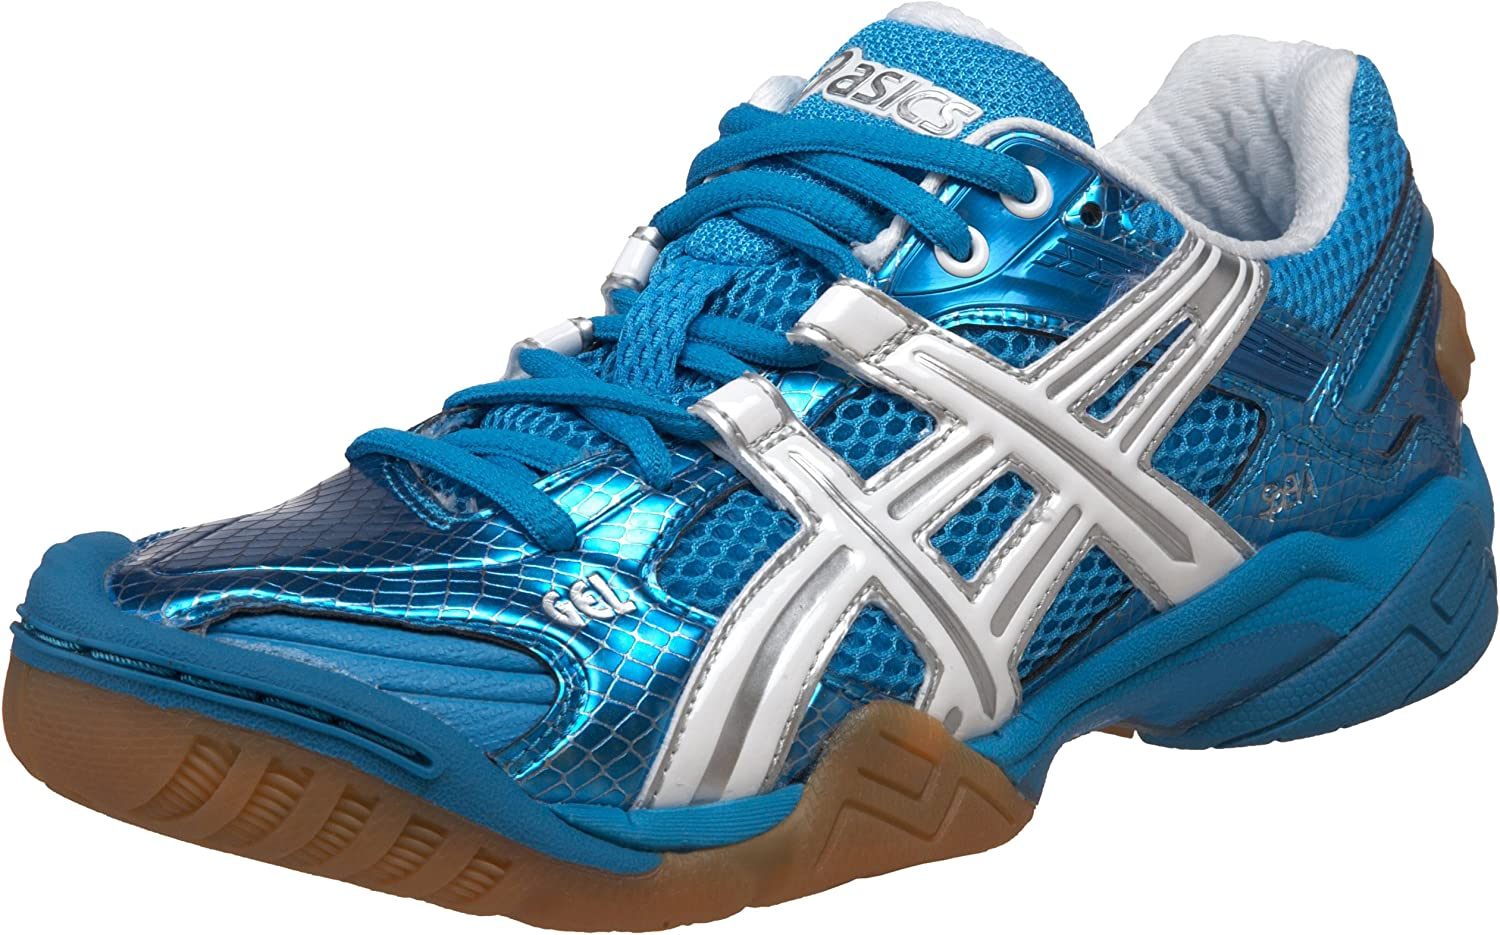 ASICS Women's Gel-Domain 2 Volleyball shoes